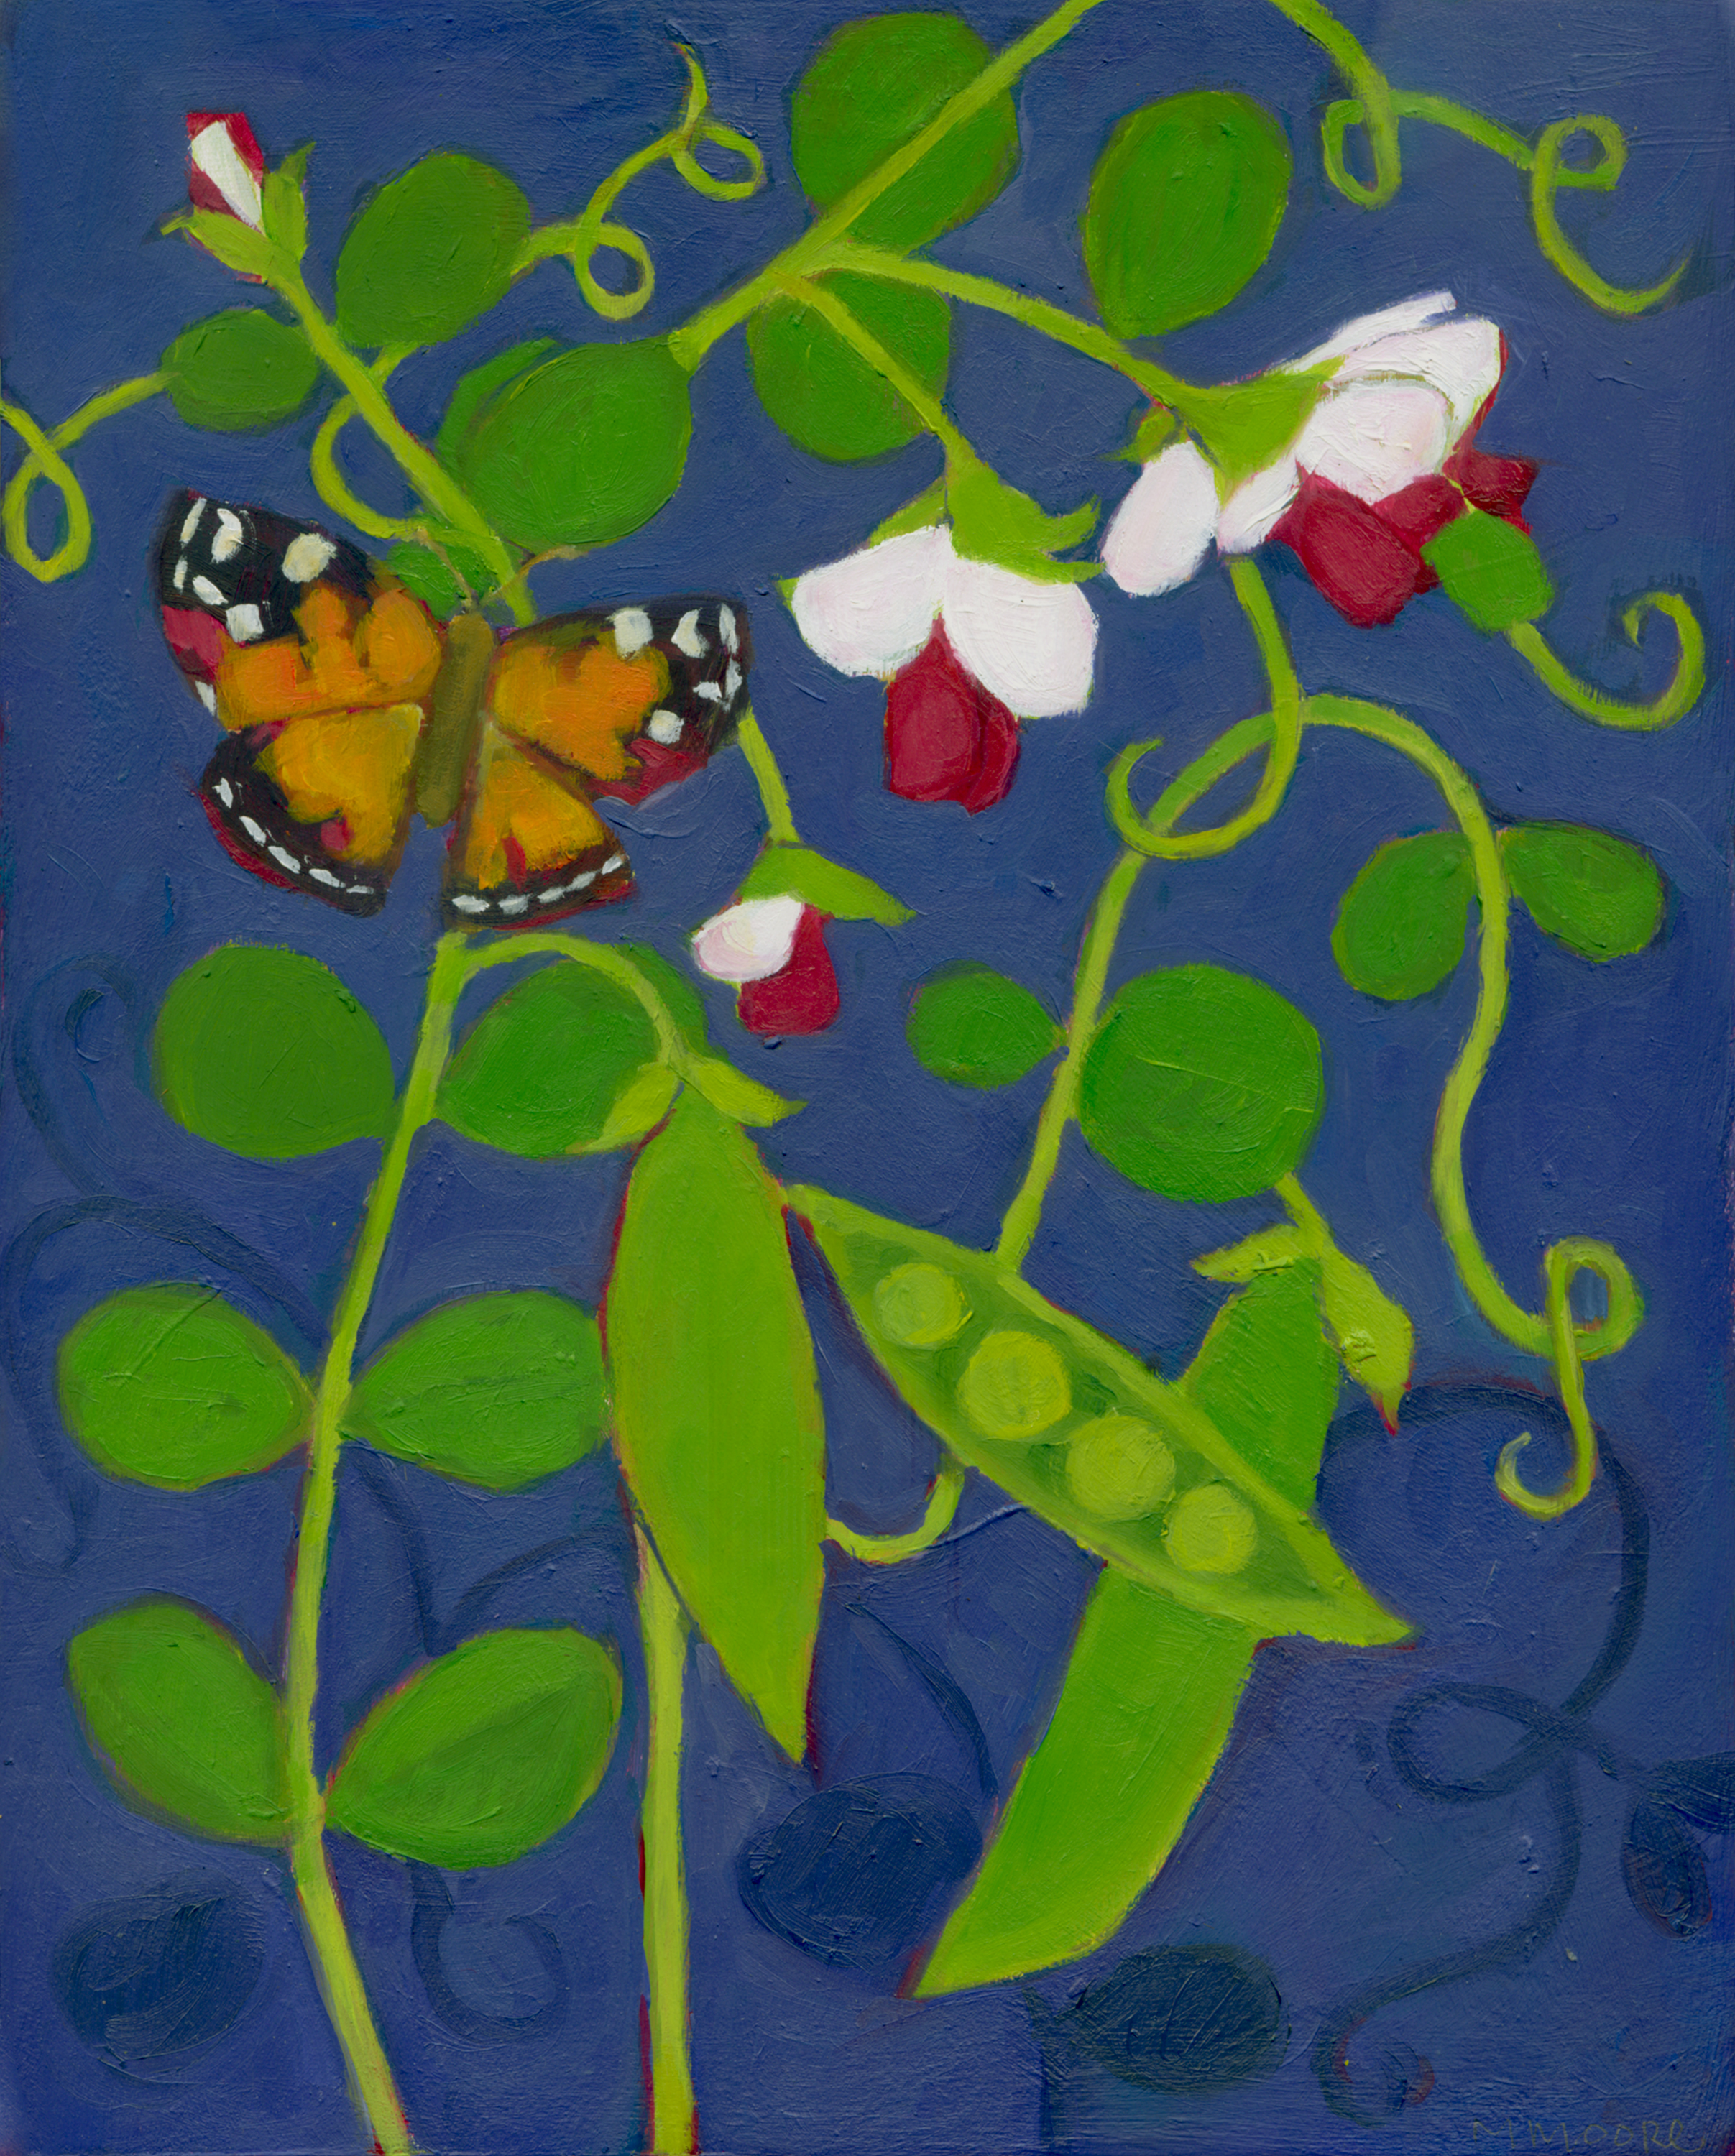 Snap Peas with Butterfly